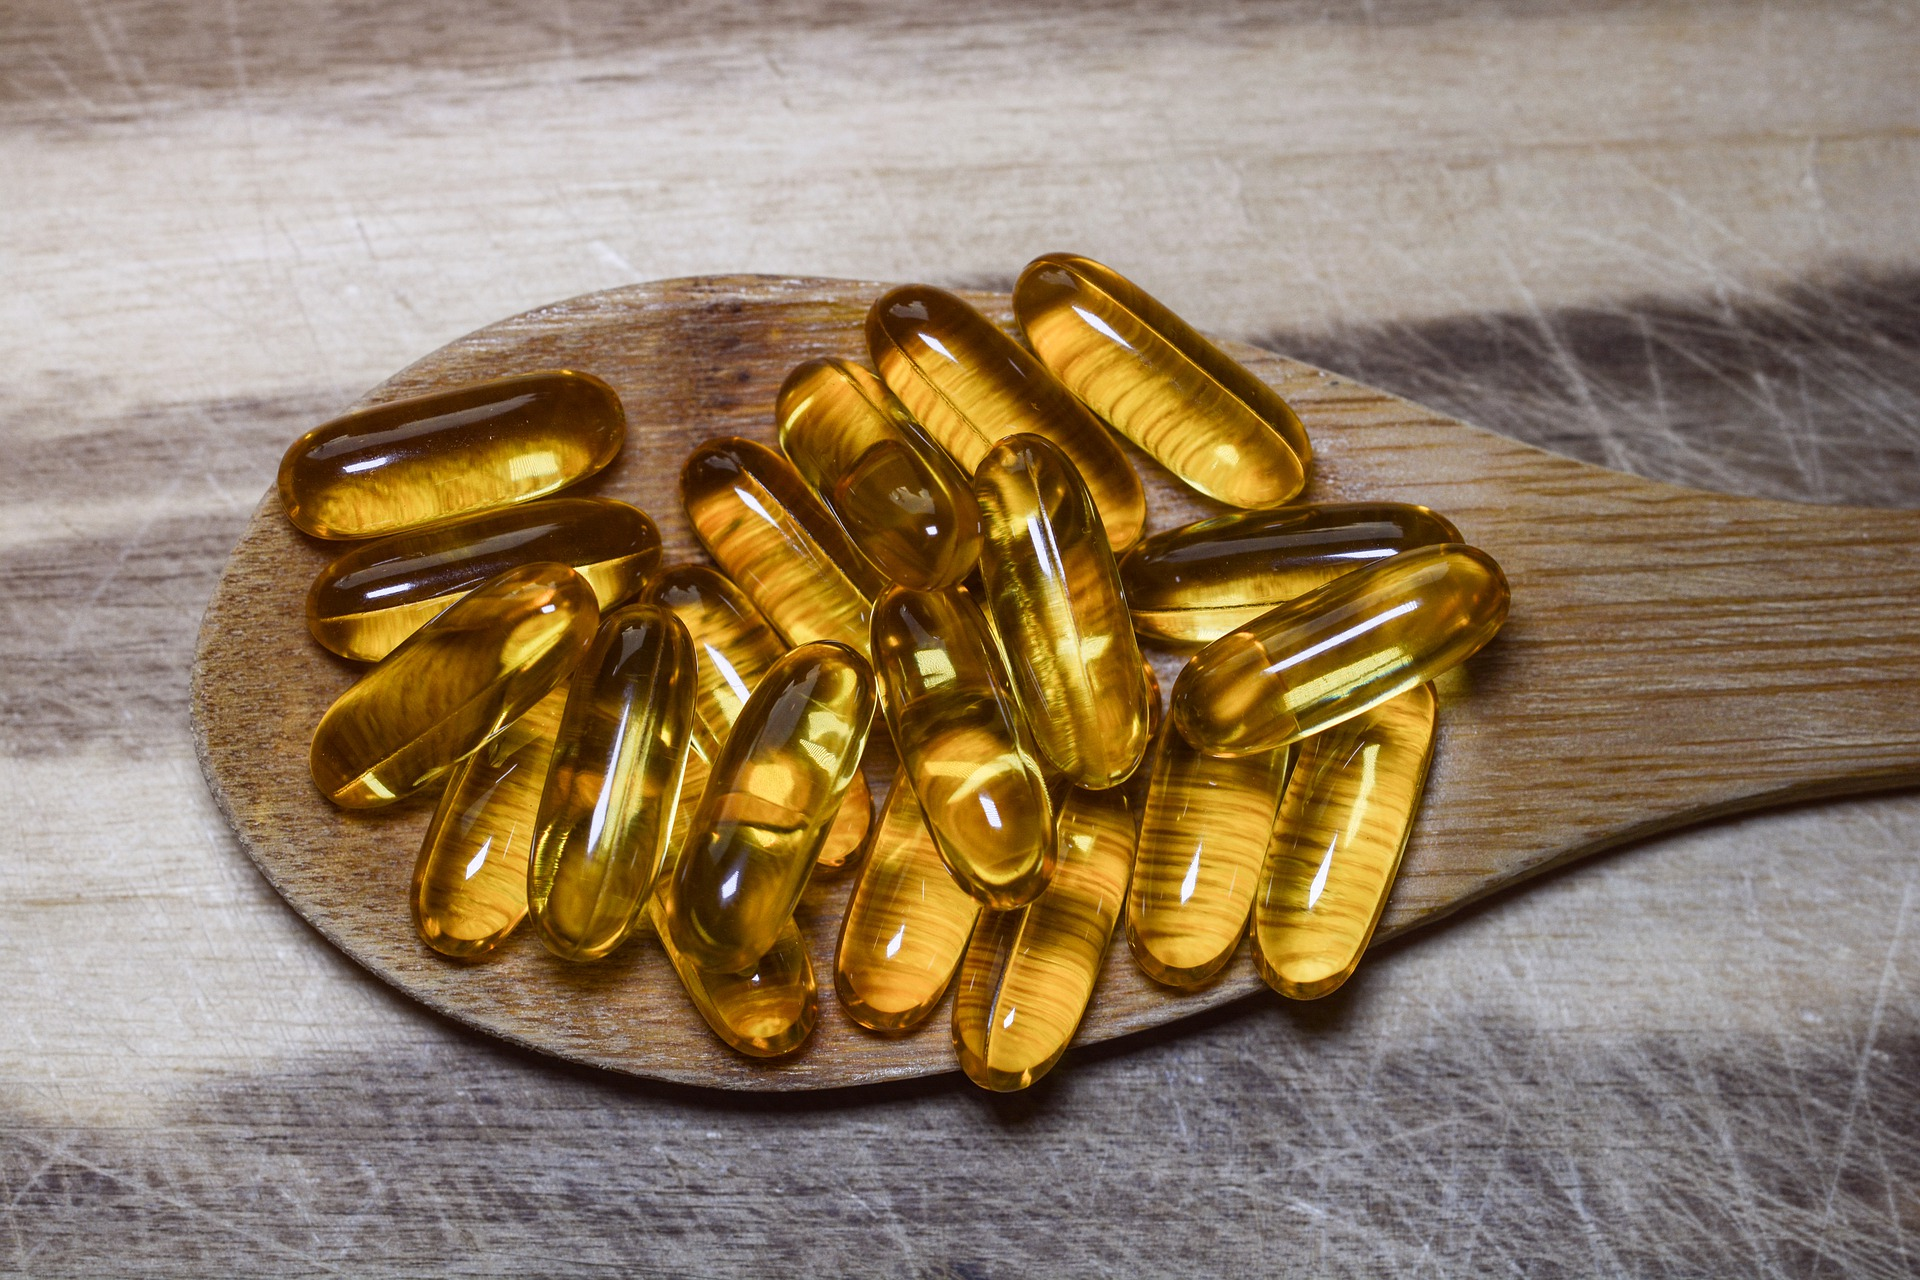 Fish oil supplements – Do we need them?